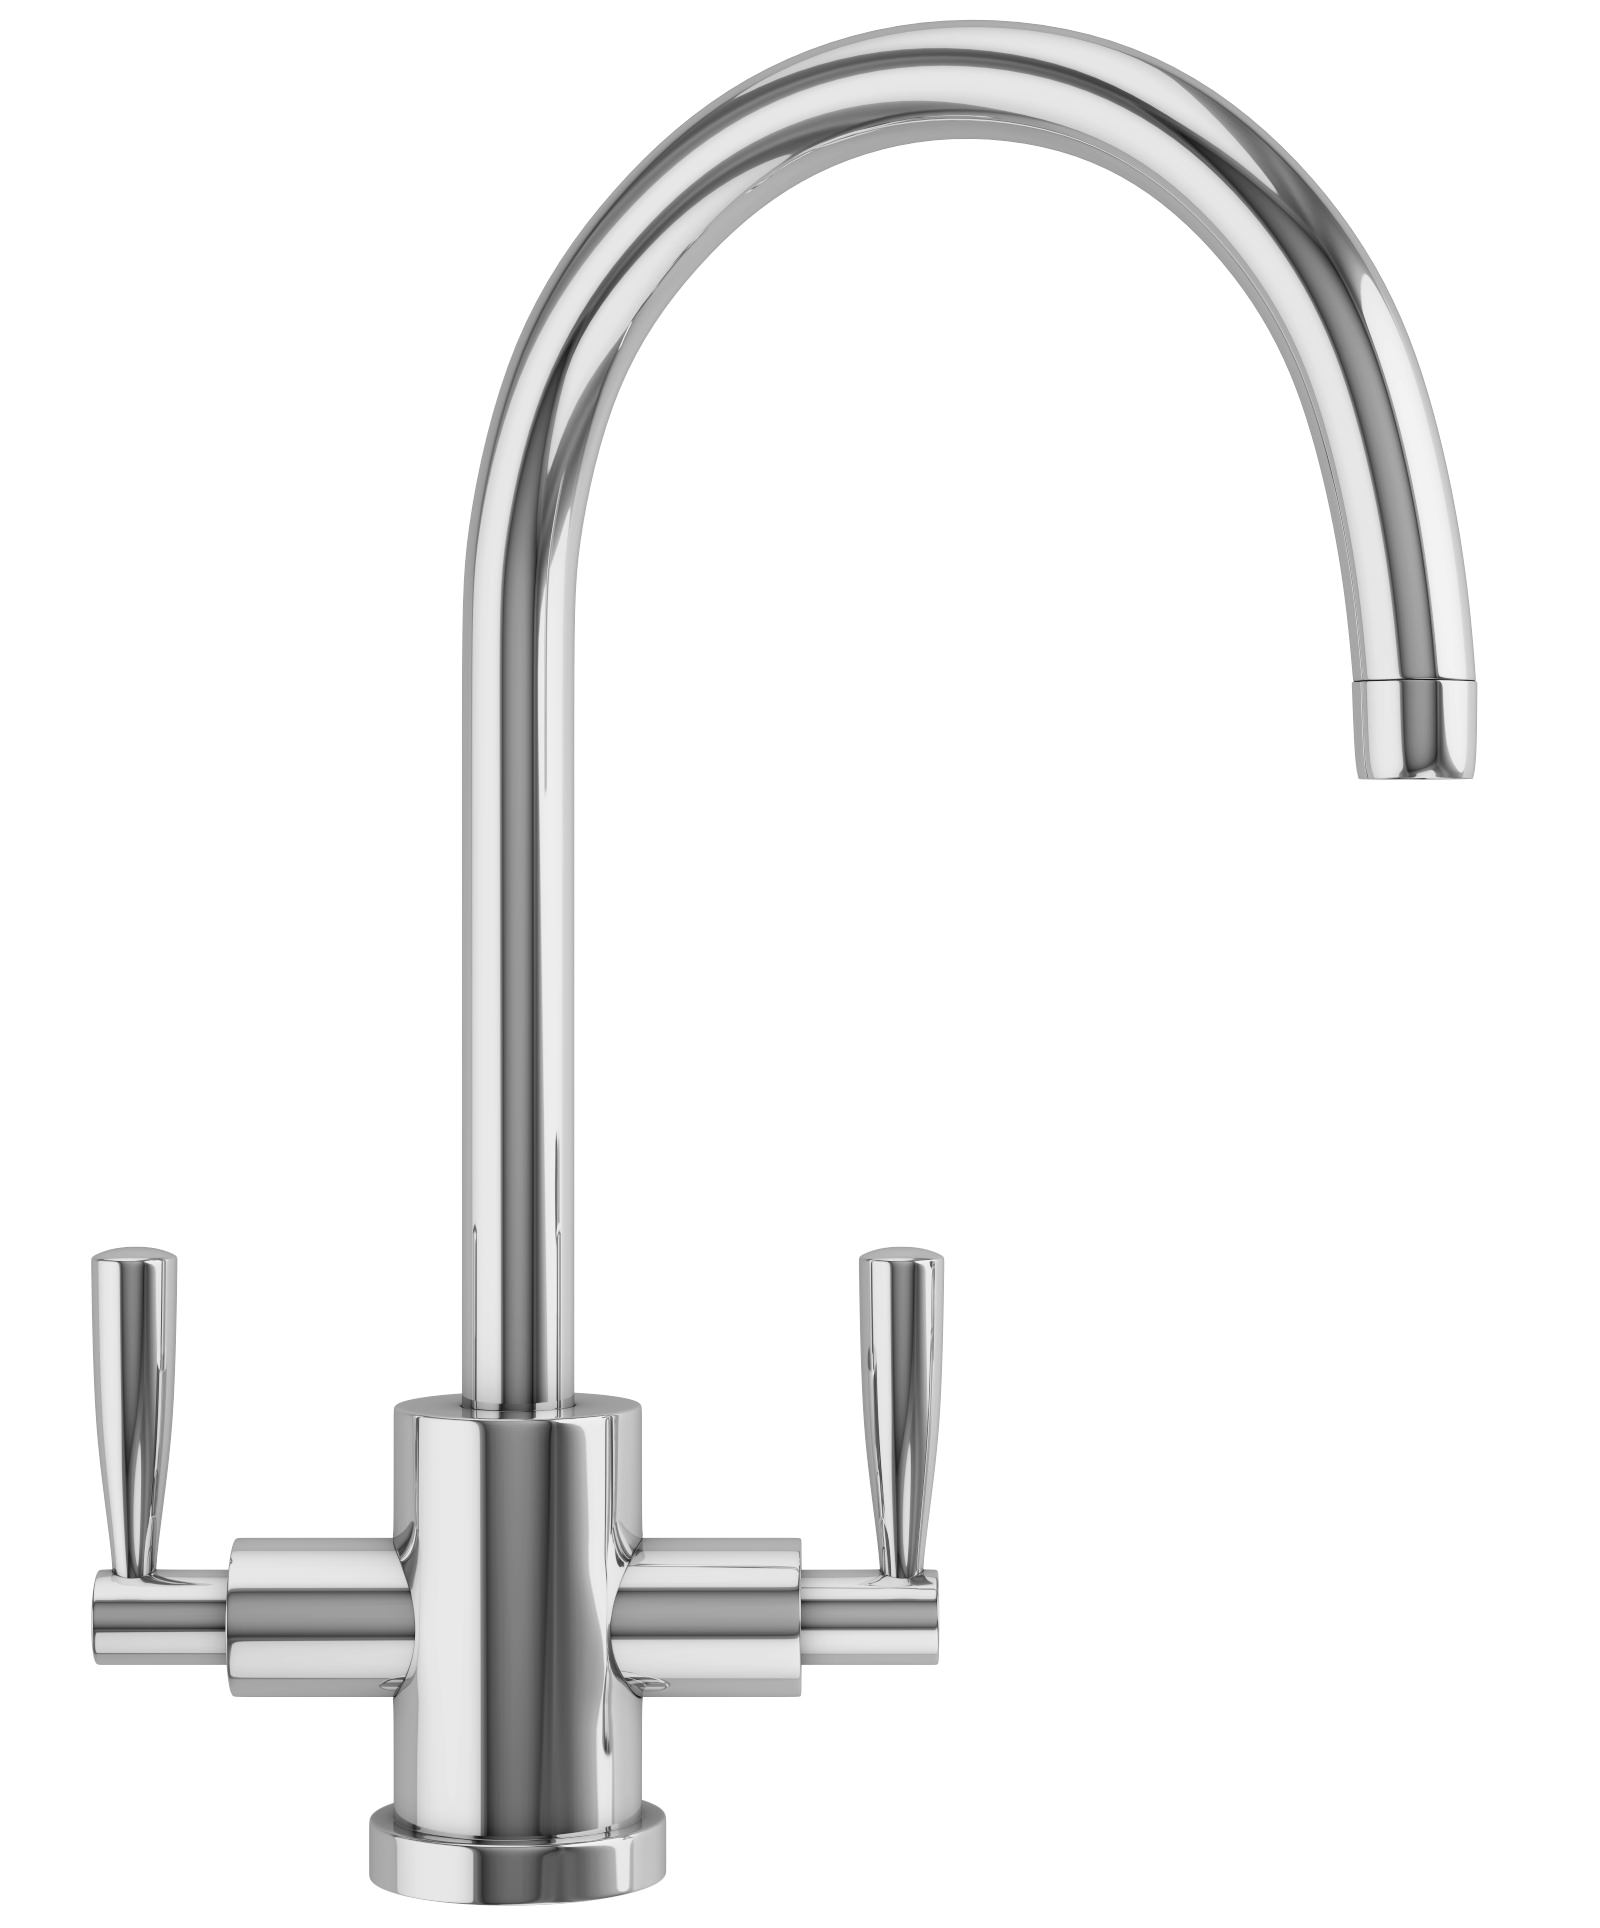 Ordinary Taps Uk Kitchen Sinks Part - 2: Franke Olympus Kitchen Sink Mixer Tap Chrome